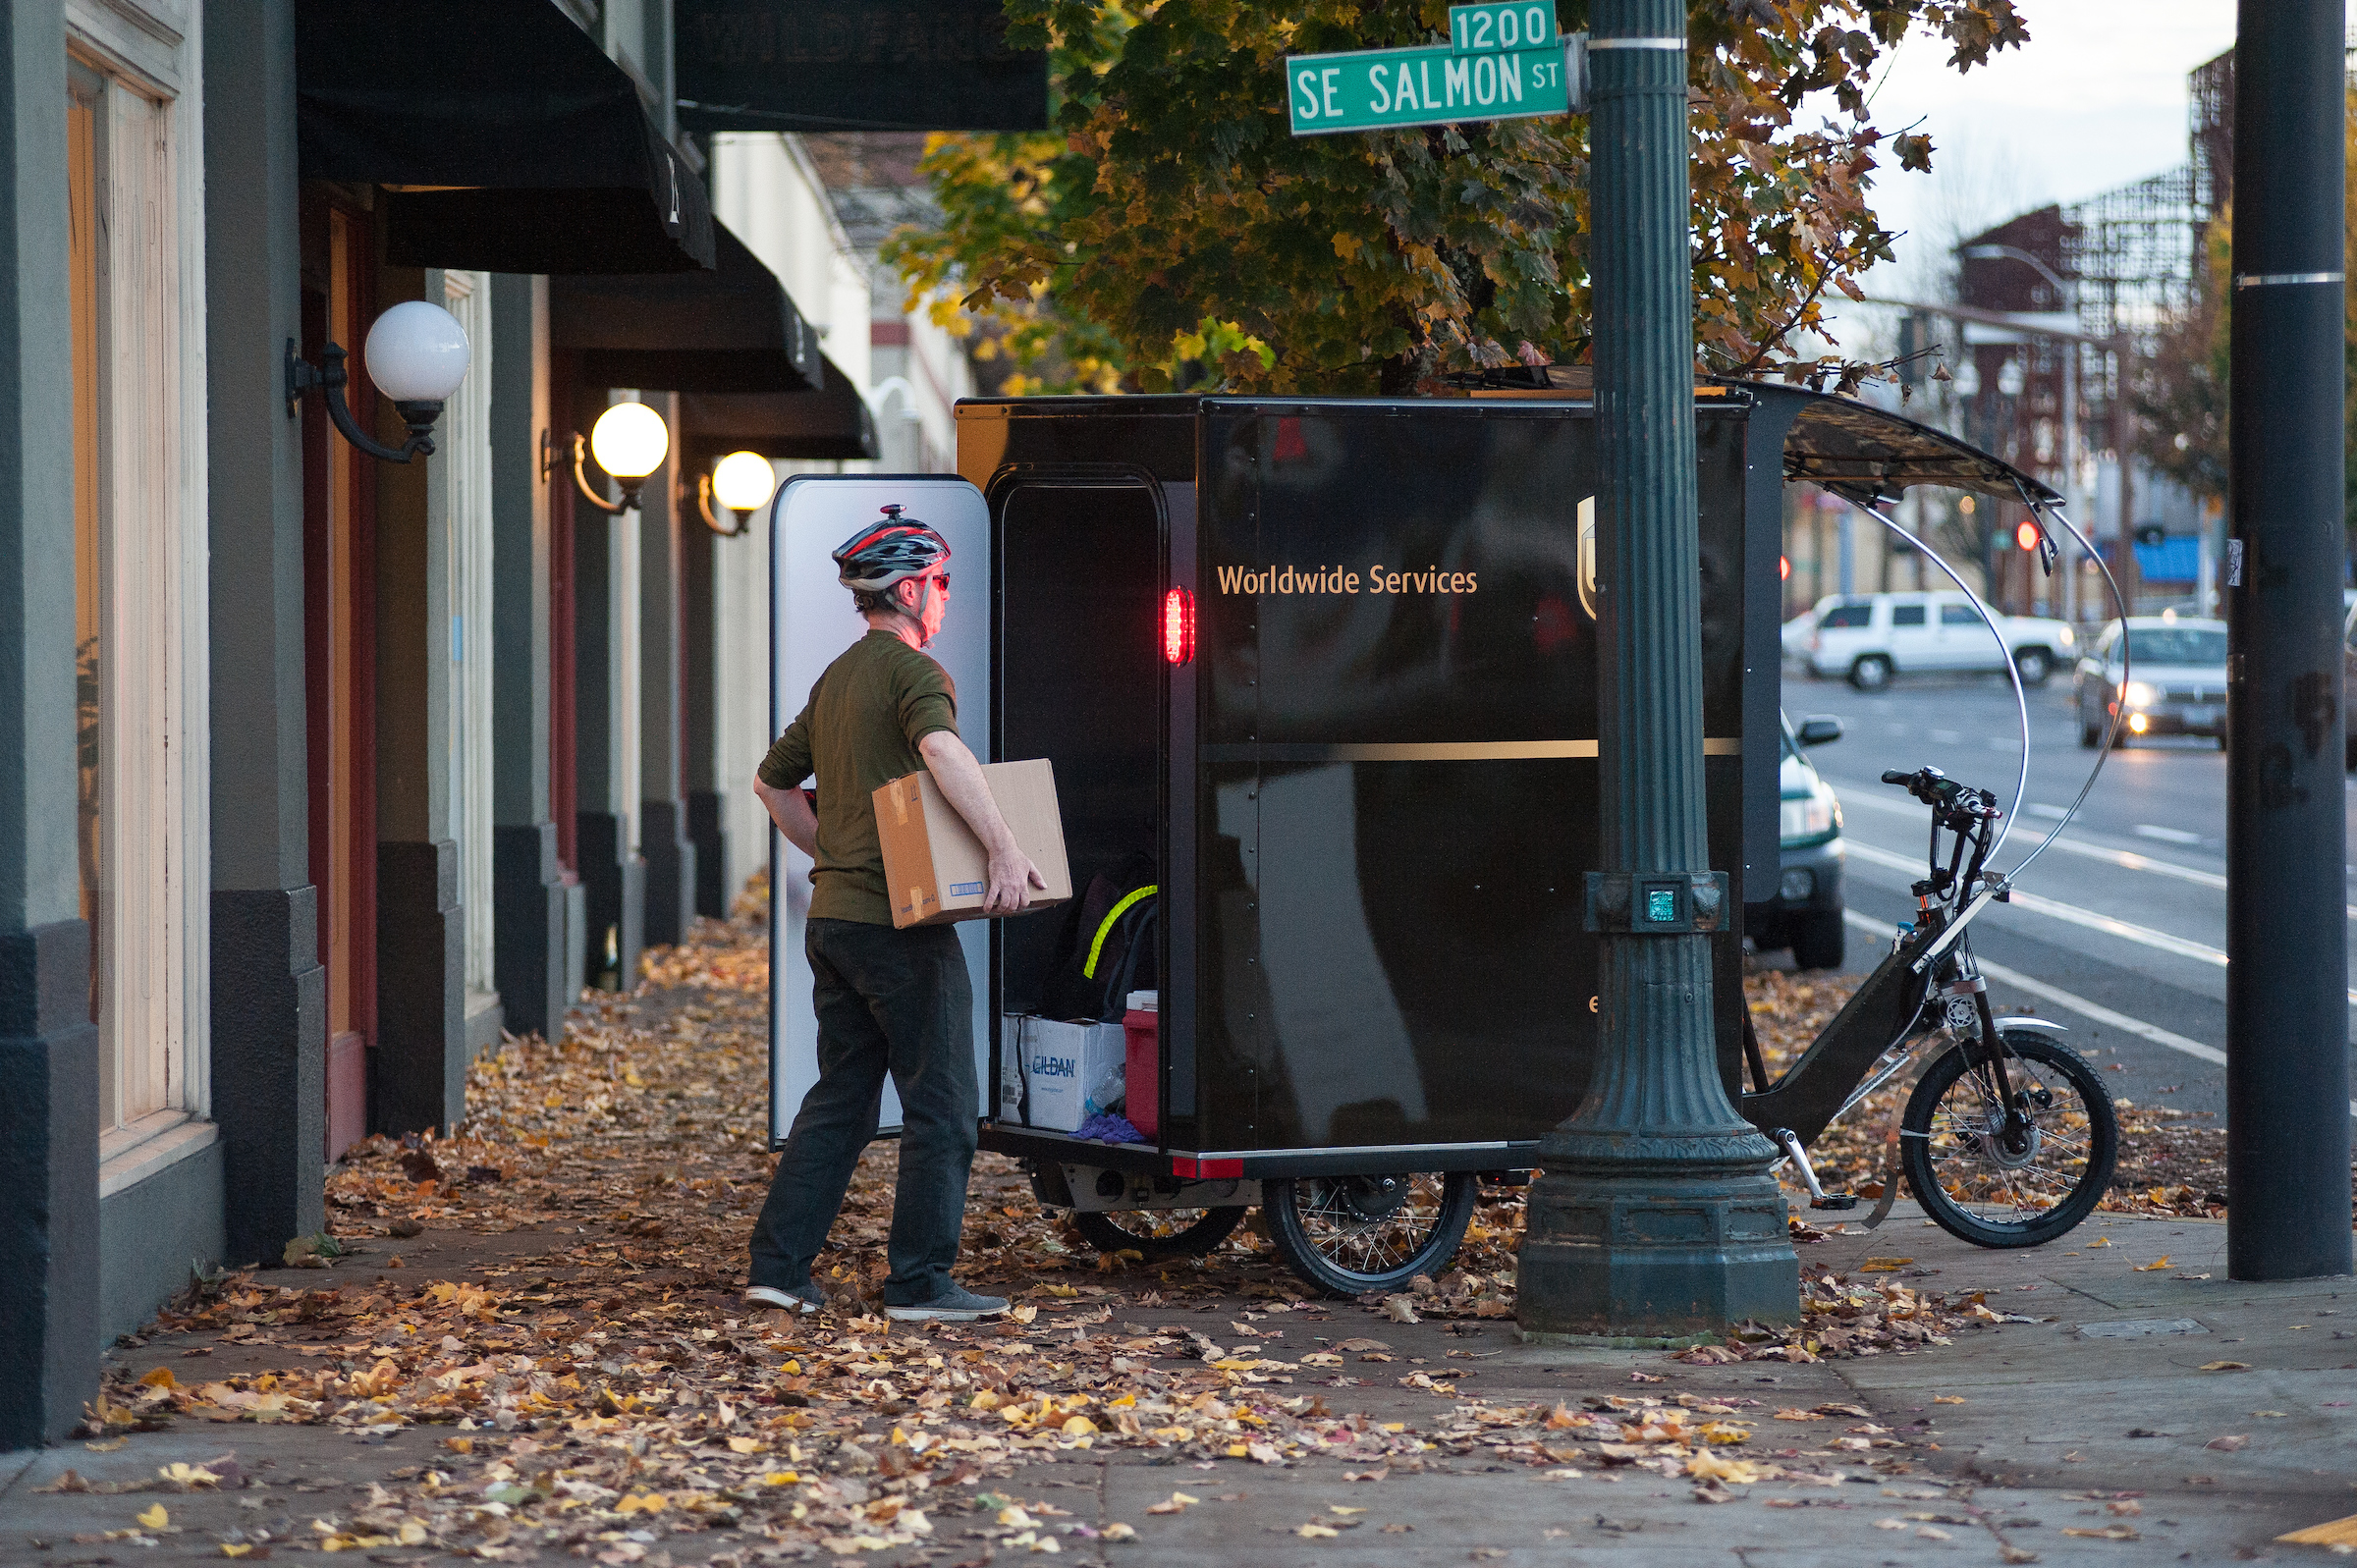 Ups Now Using Pedal Powered Trike To Deliver Freight In